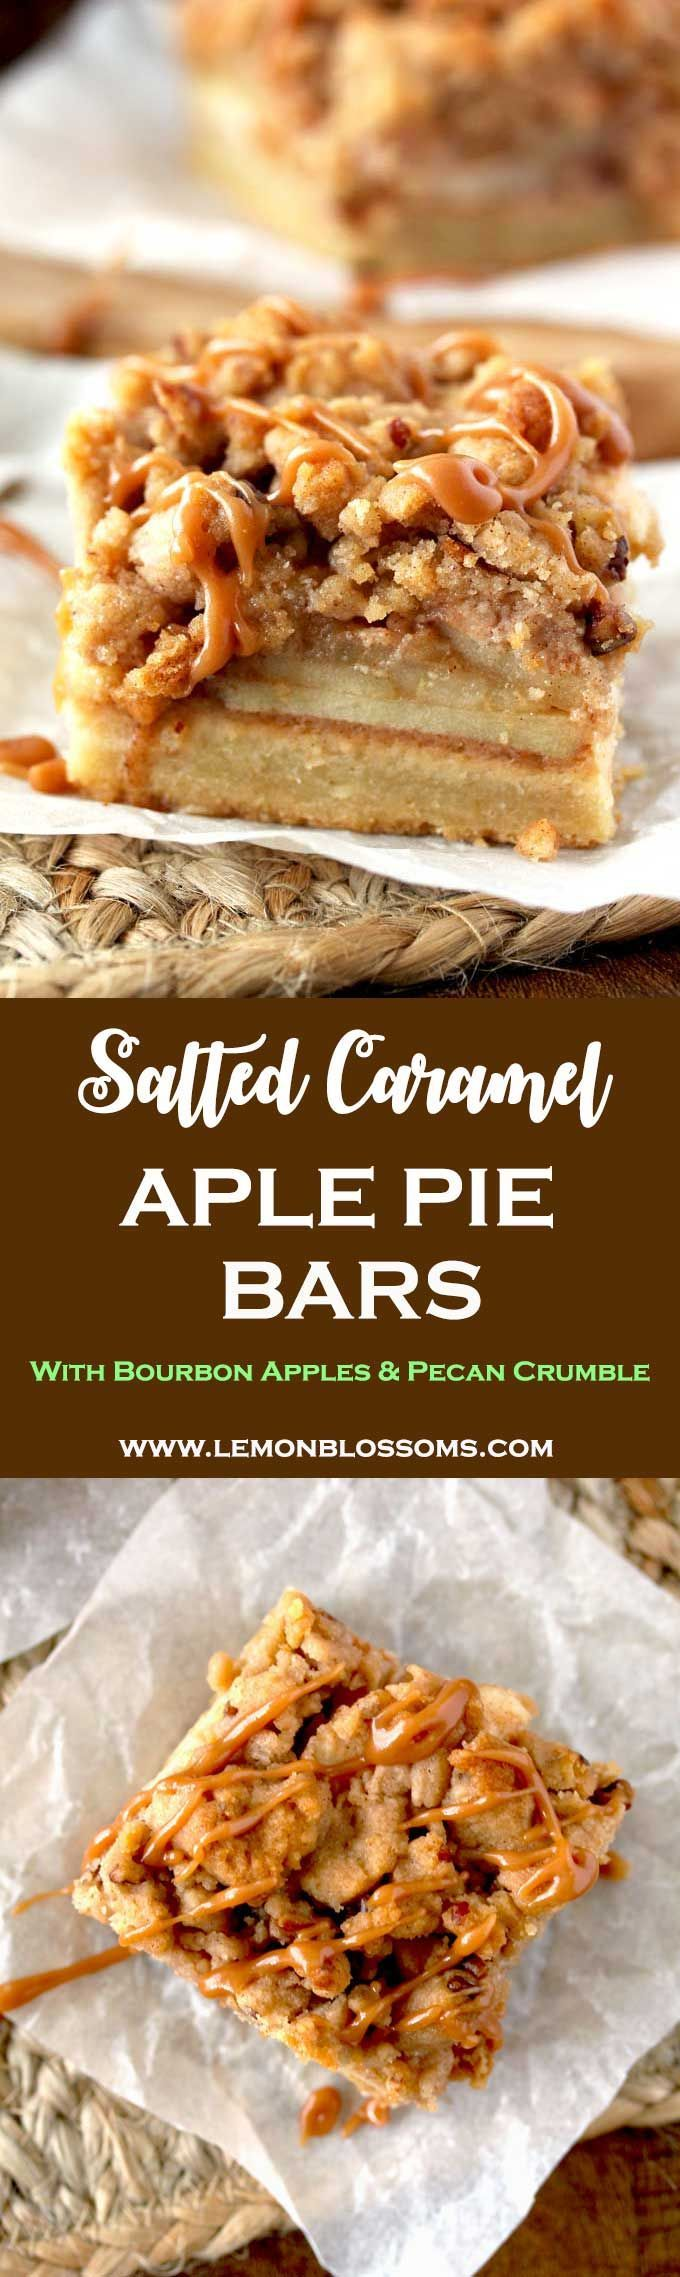 Salted Caramel Apple Pie Bars | Posted By: DebbieNet.com